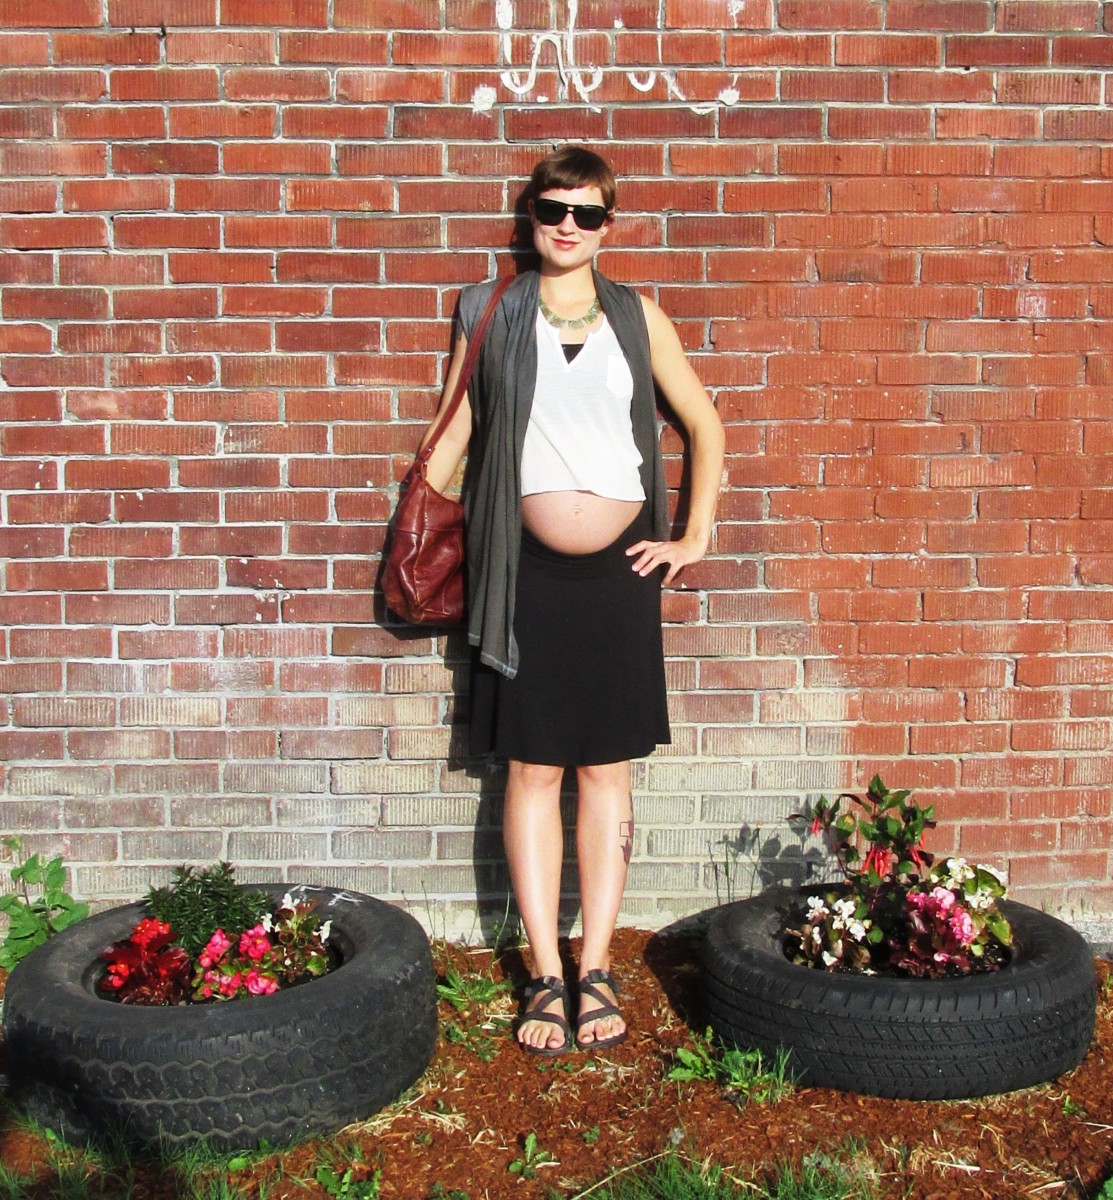 FASHION DARE: I Wore a Crop Top While Pregnant To See How People Would React